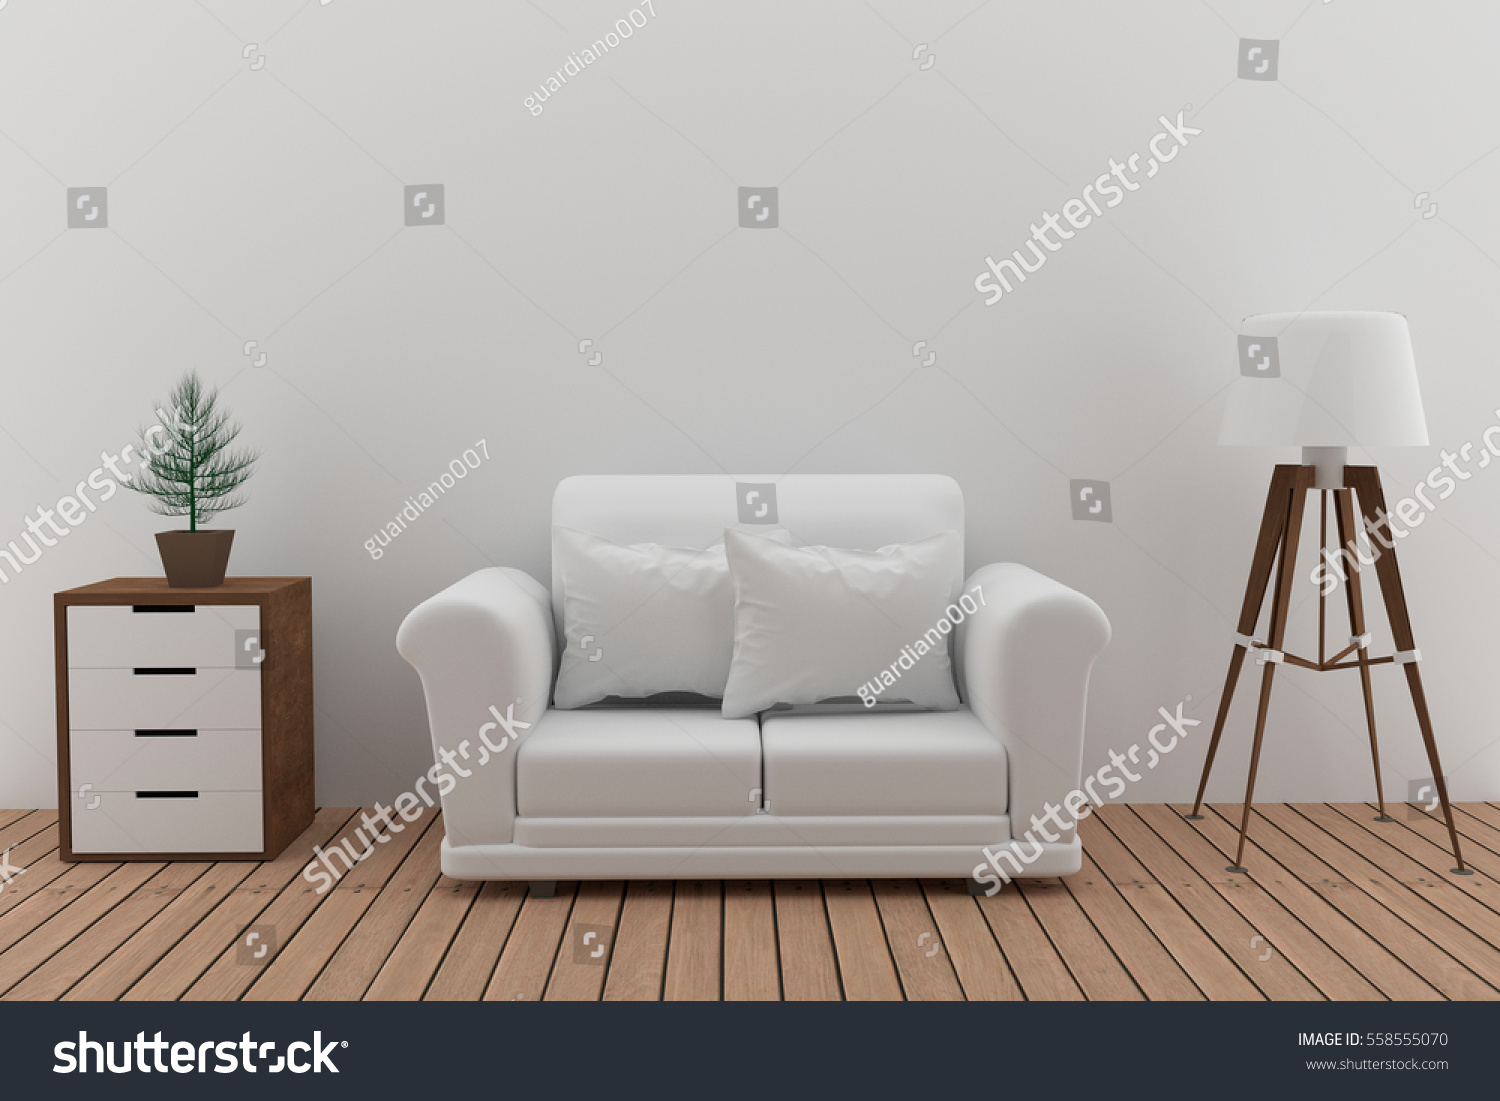 double white sofa in white room with lamp and tree in 3D render image #558555070